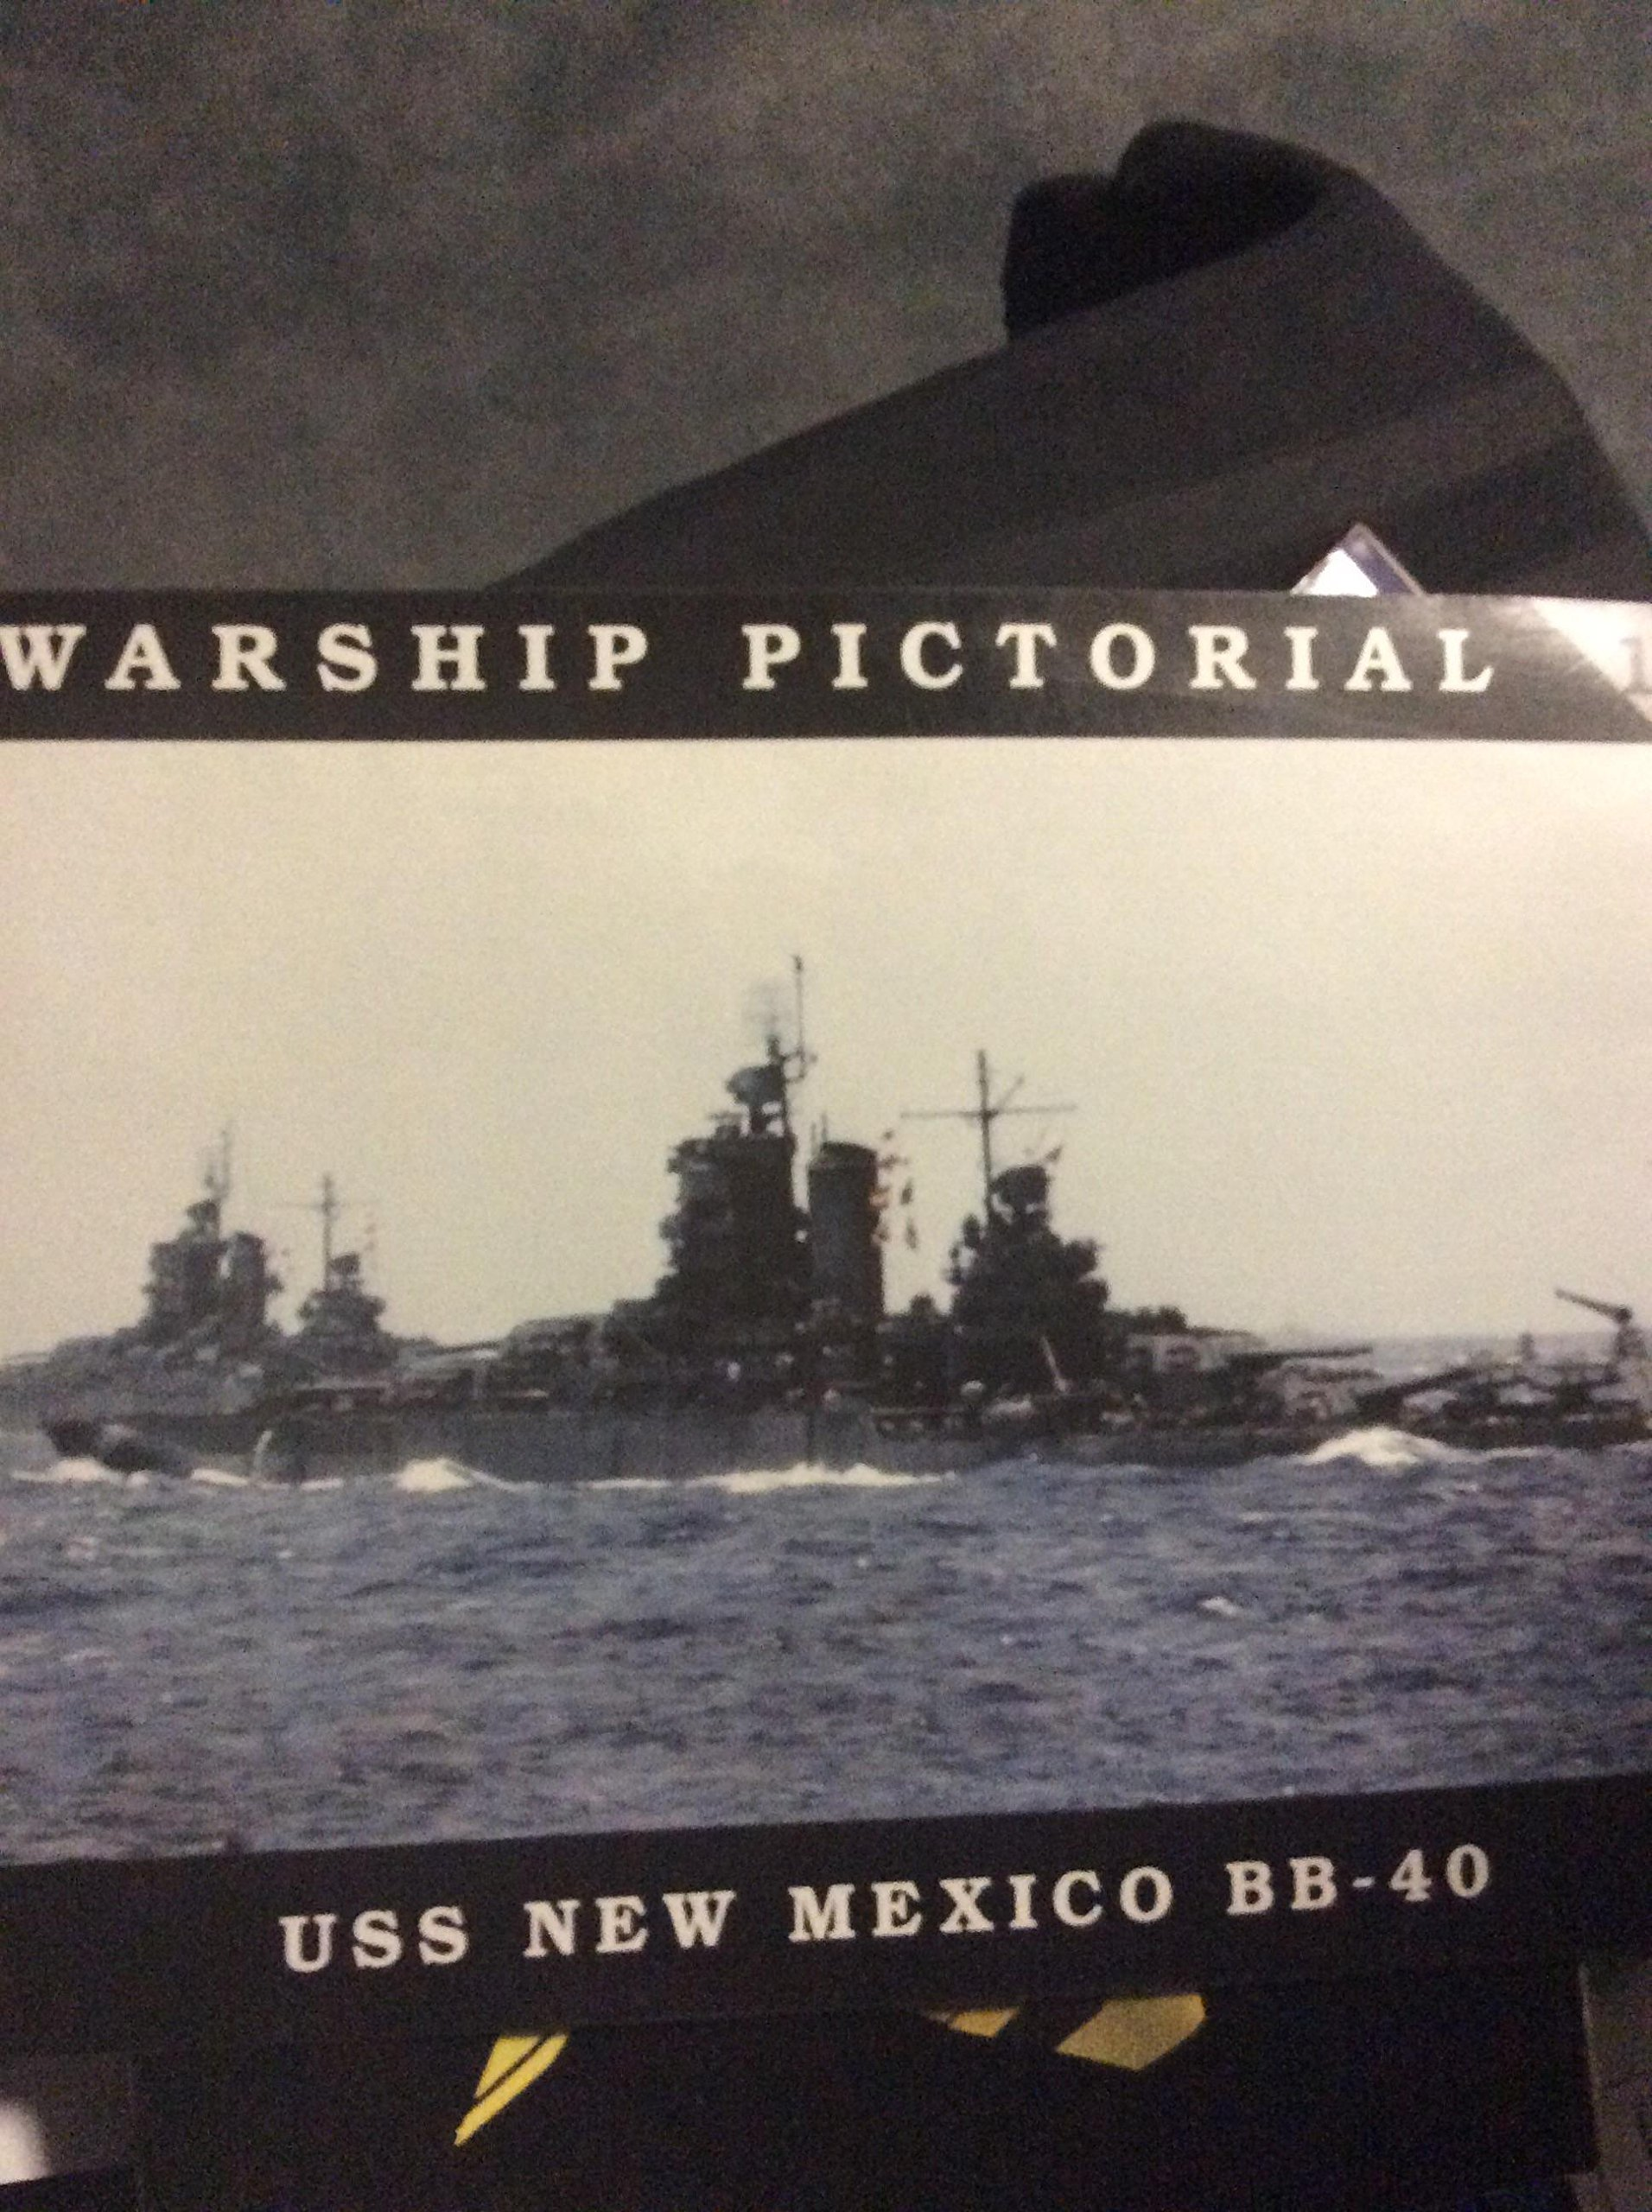 Warship Pictorial No. 18 - USS New Mexico BB-40